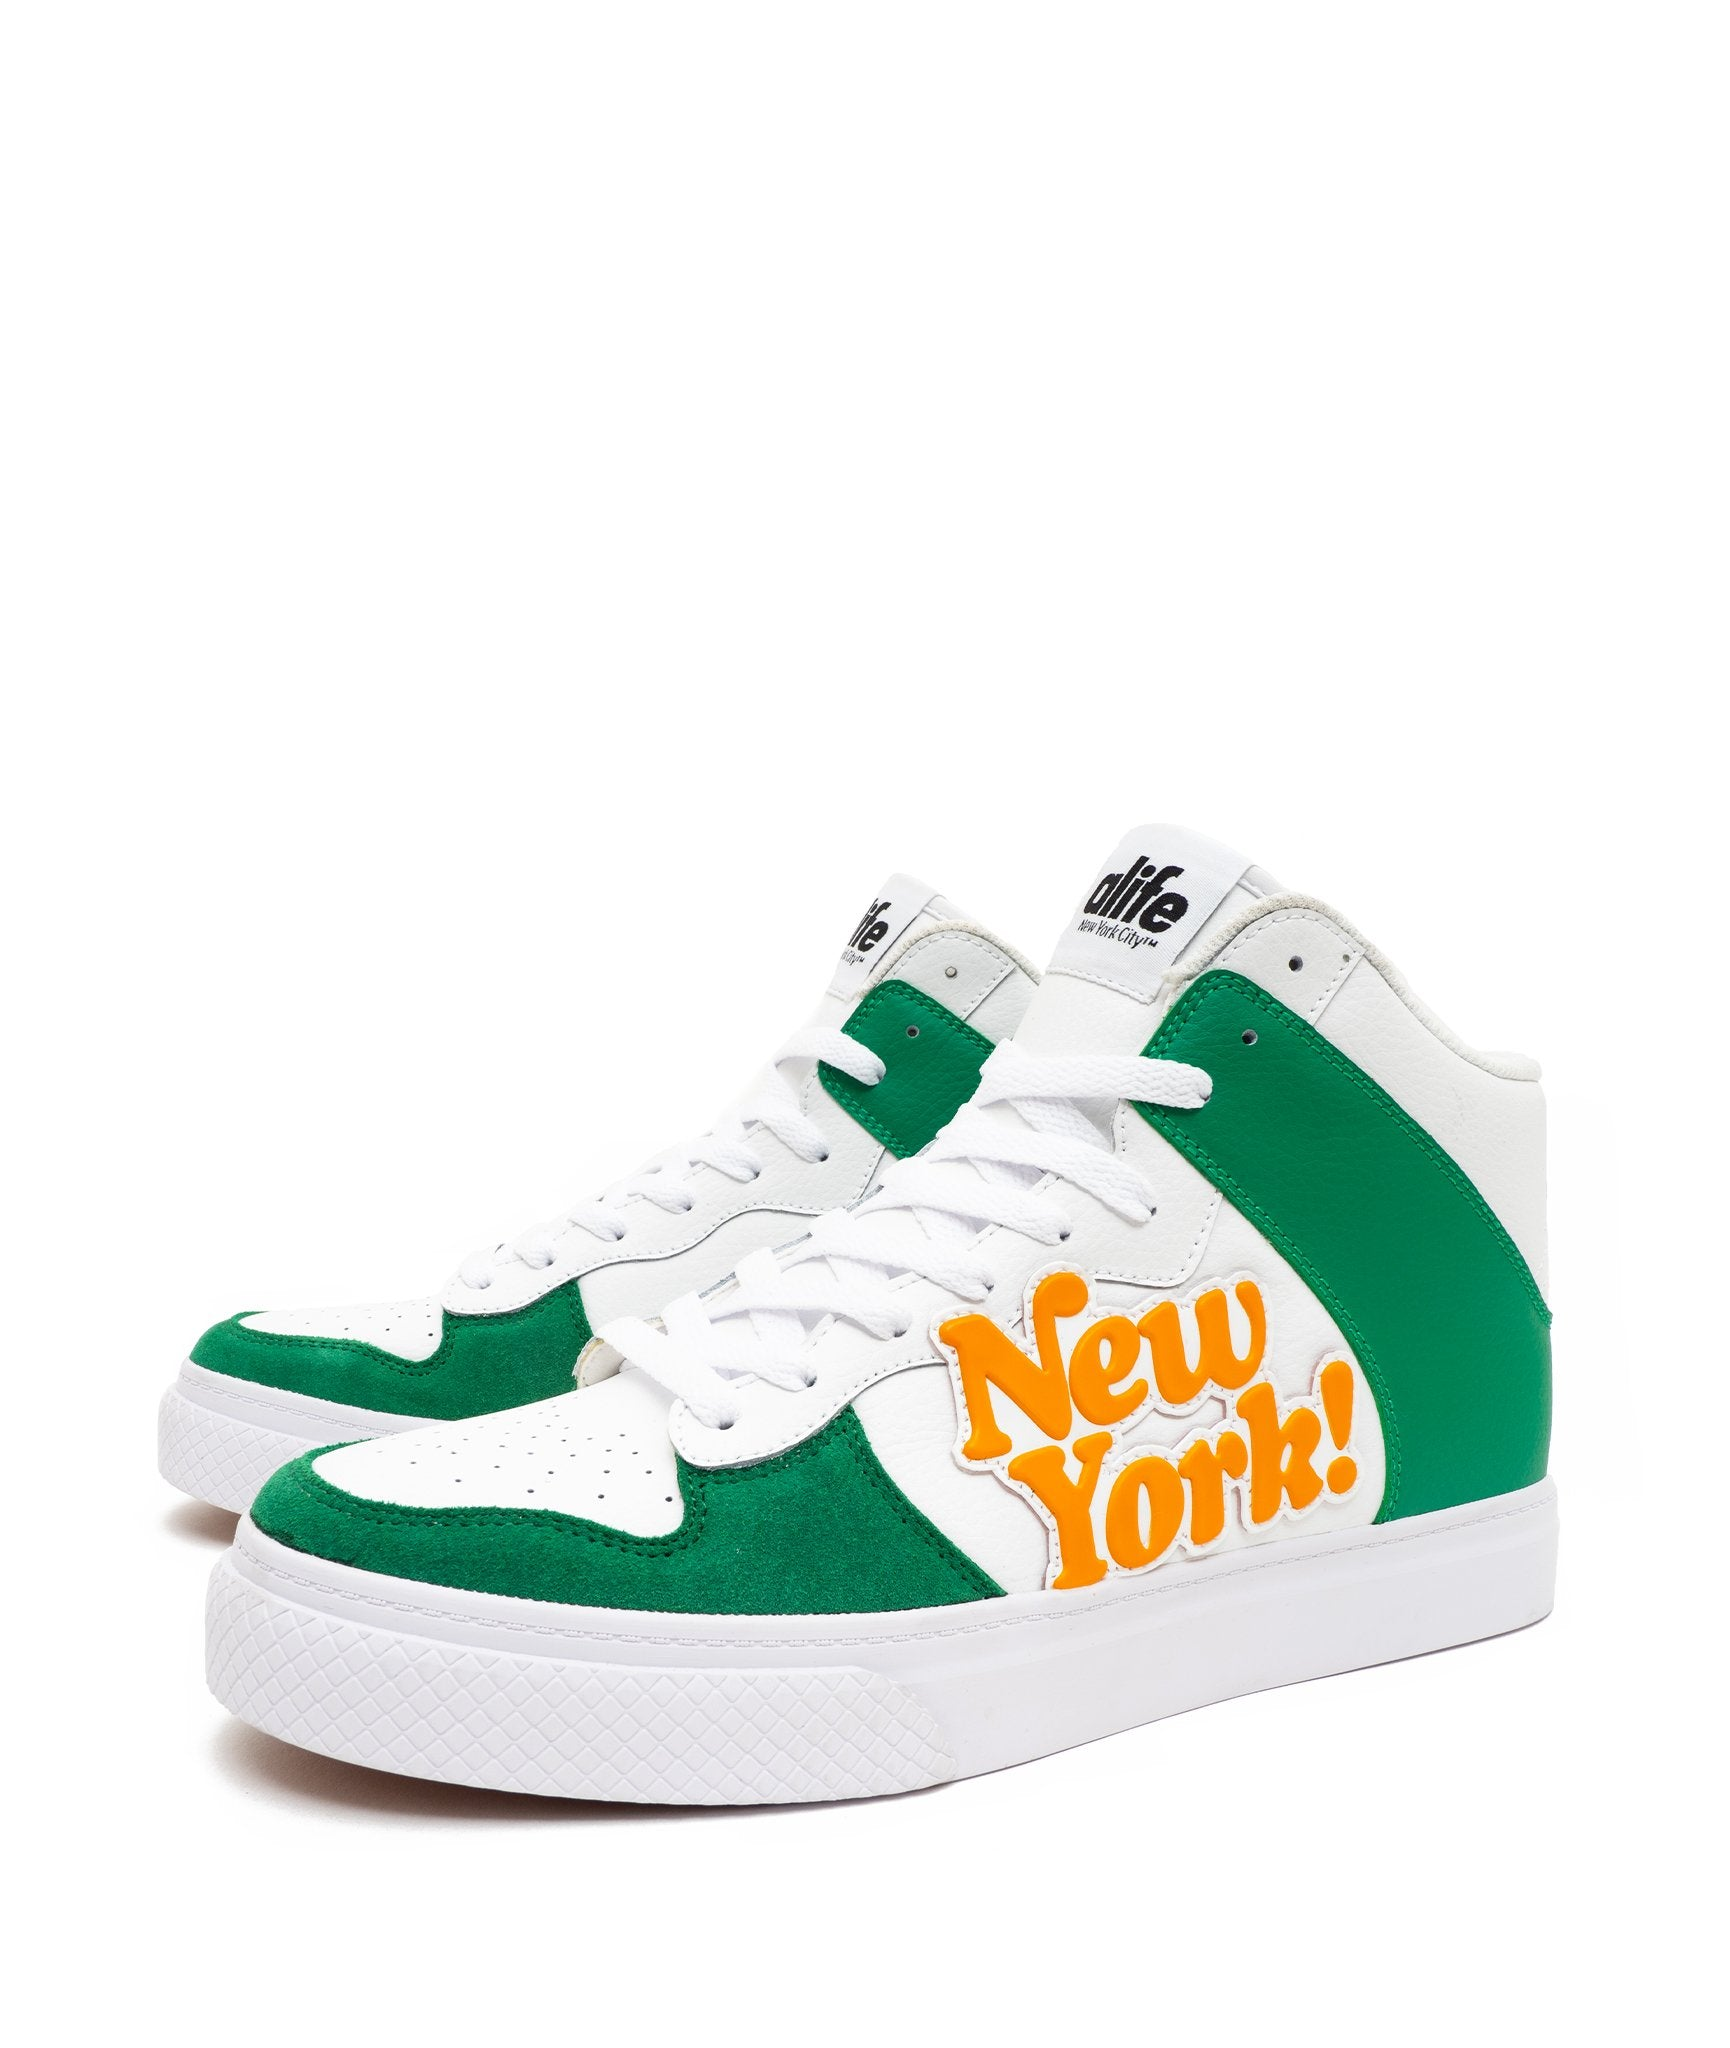 Alife Everybody Hi 'New York!'